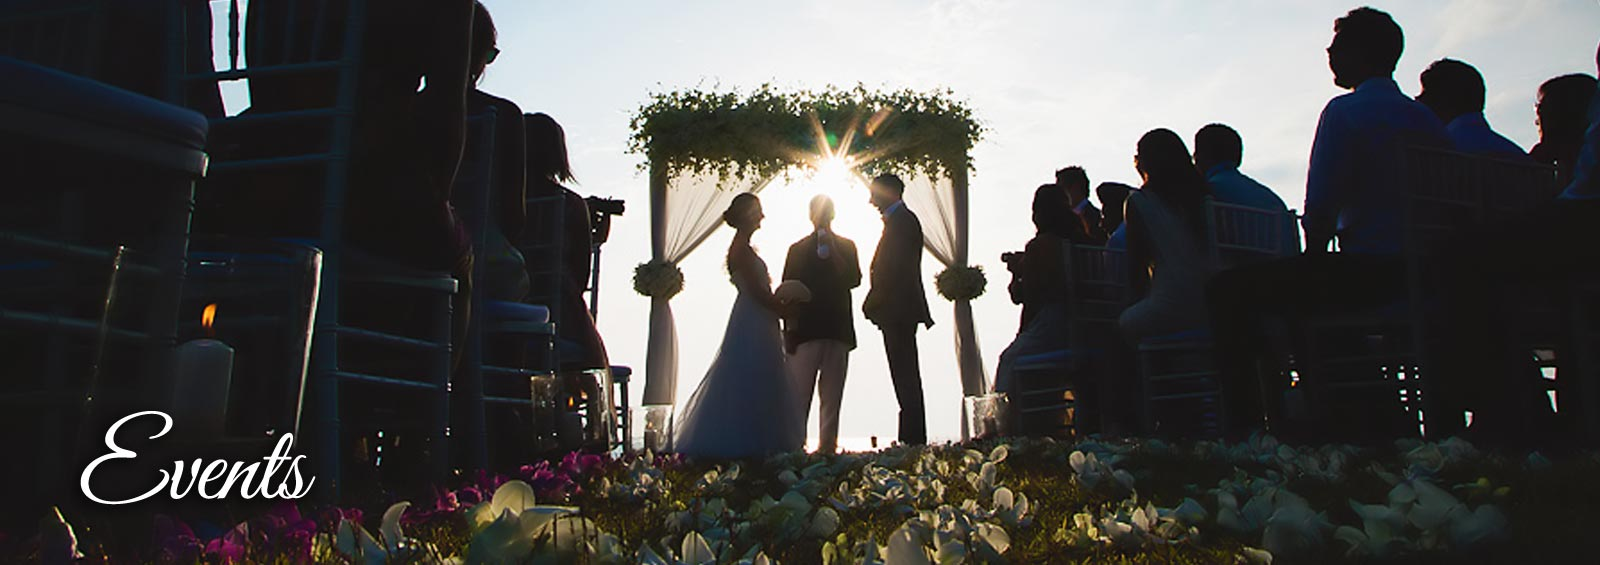 Villa Samudra Events, Best Wedding Beachfront Villa in Bali, Wedding Packages Beachfront Villa in Bali